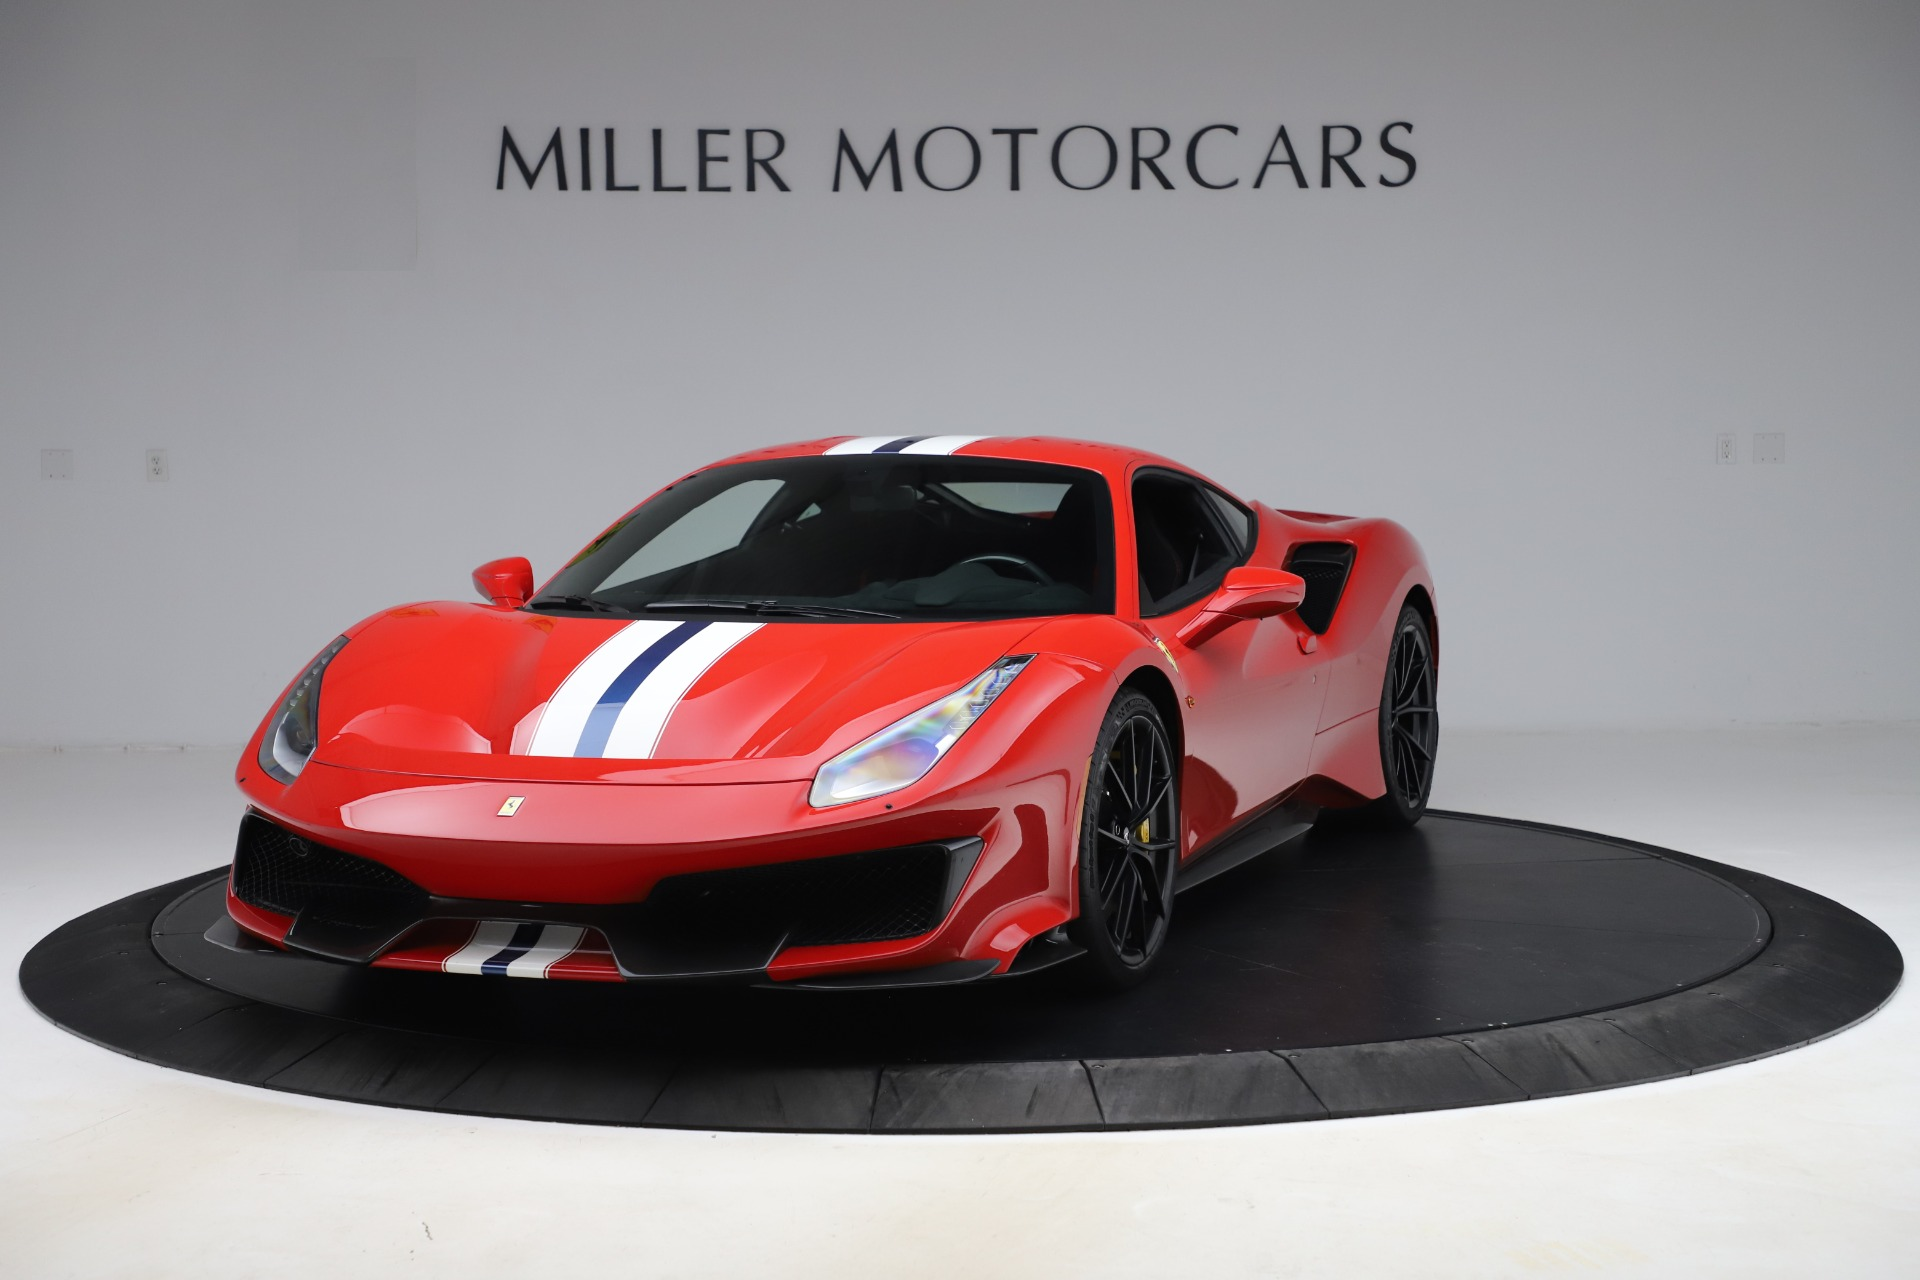 Used 2019 Ferrari 488 Pista for sale $451,900 at Rolls-Royce Motor Cars Greenwich in Greenwich CT 06830 1